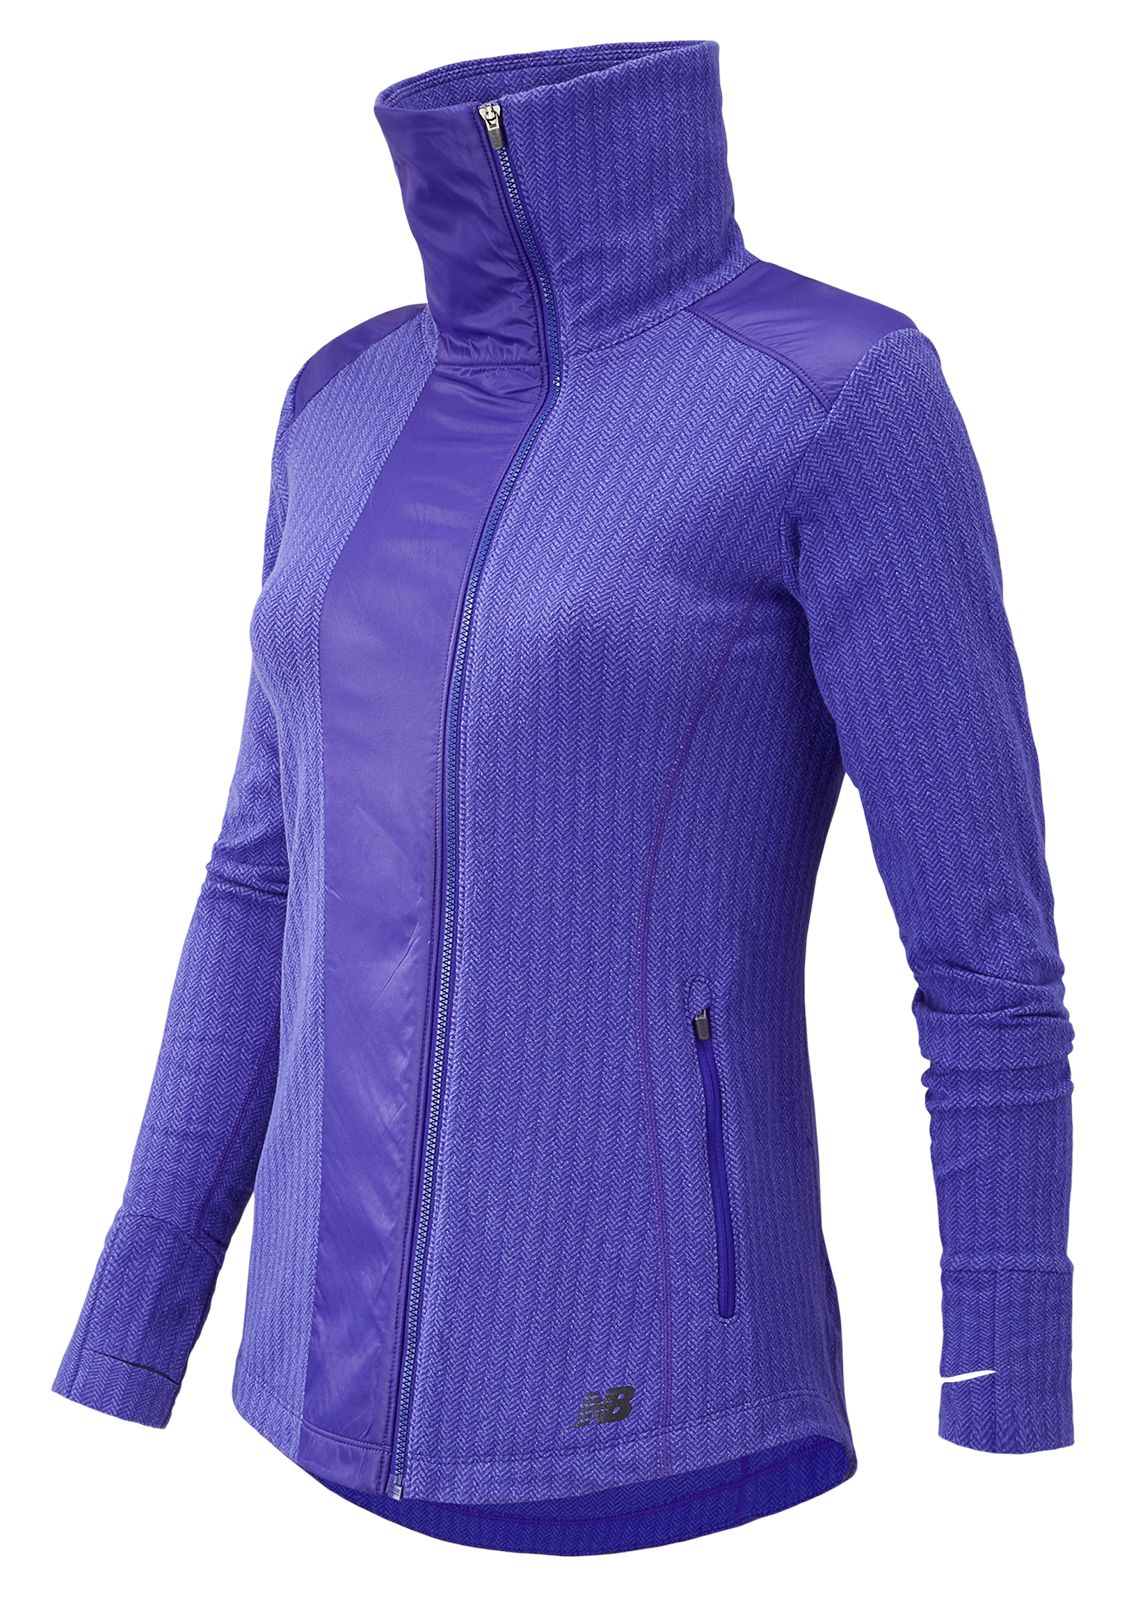 New Balance Novelty Heat Jacket Womens Purple